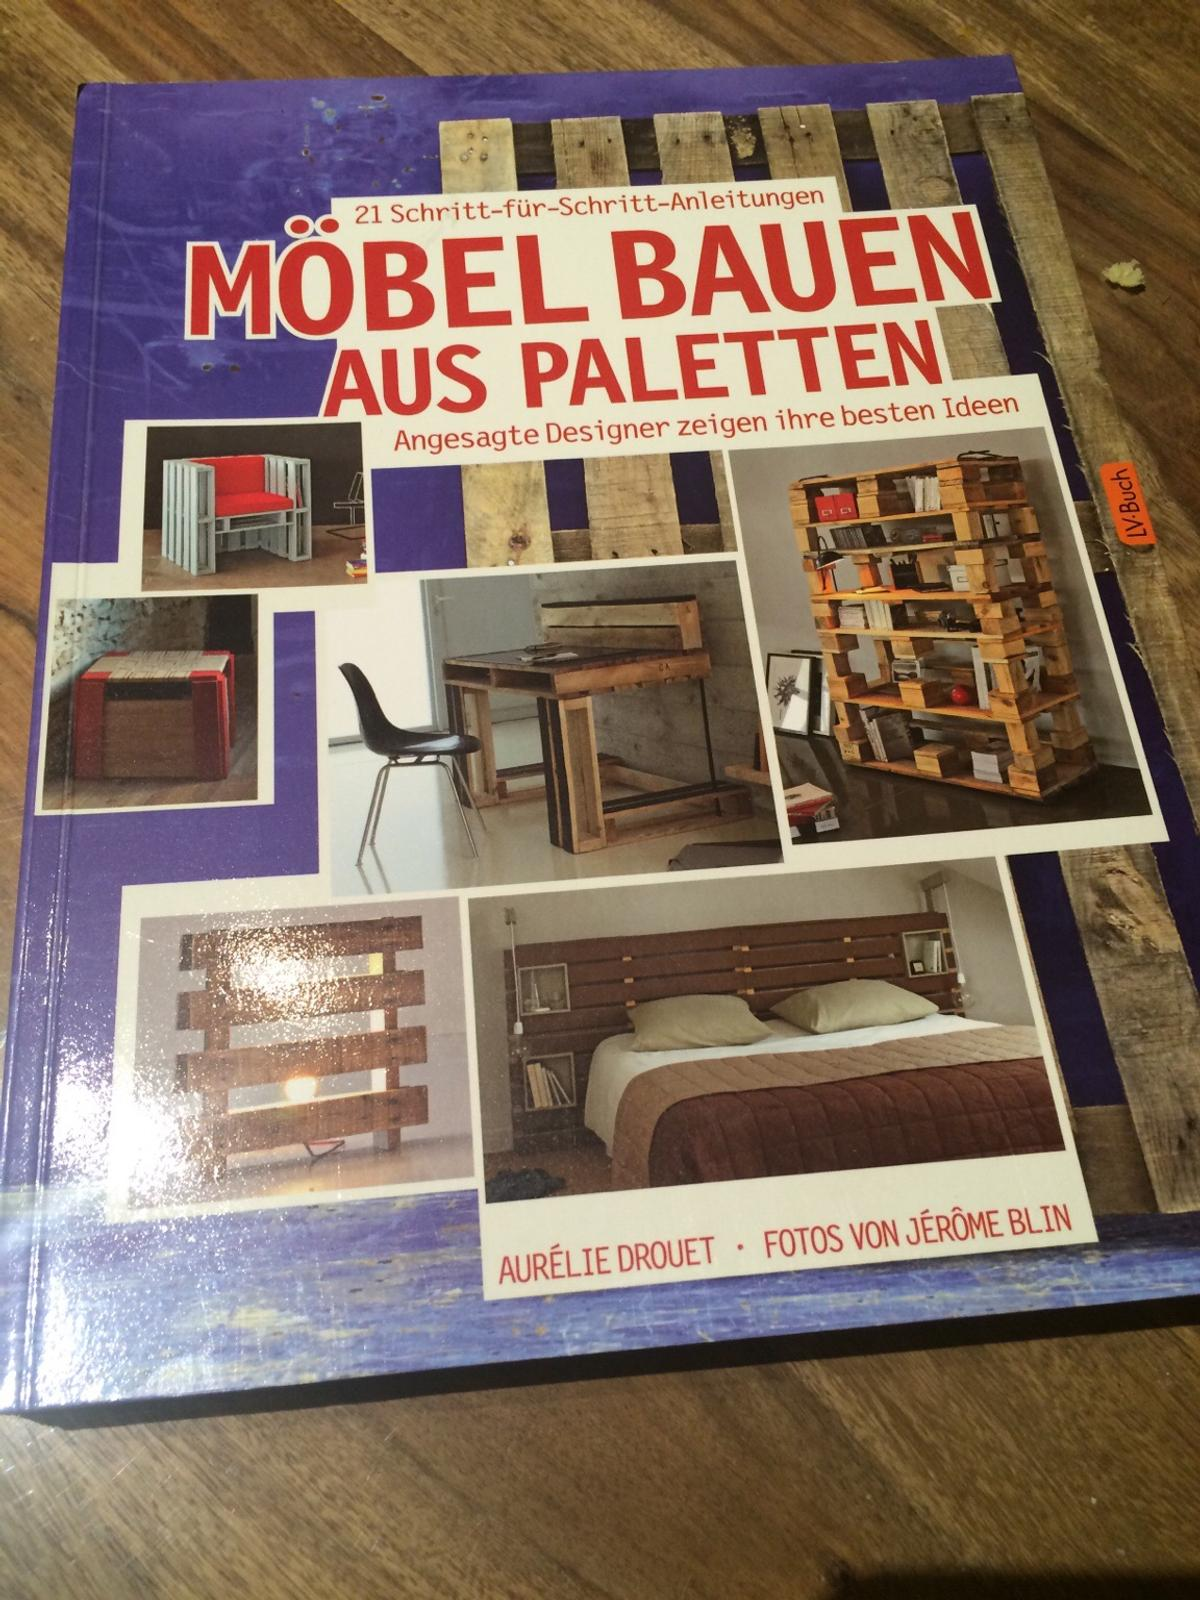 Buch Mobel Bauen Aus Paletten In 6142 Mieders For 4 00 For Sale